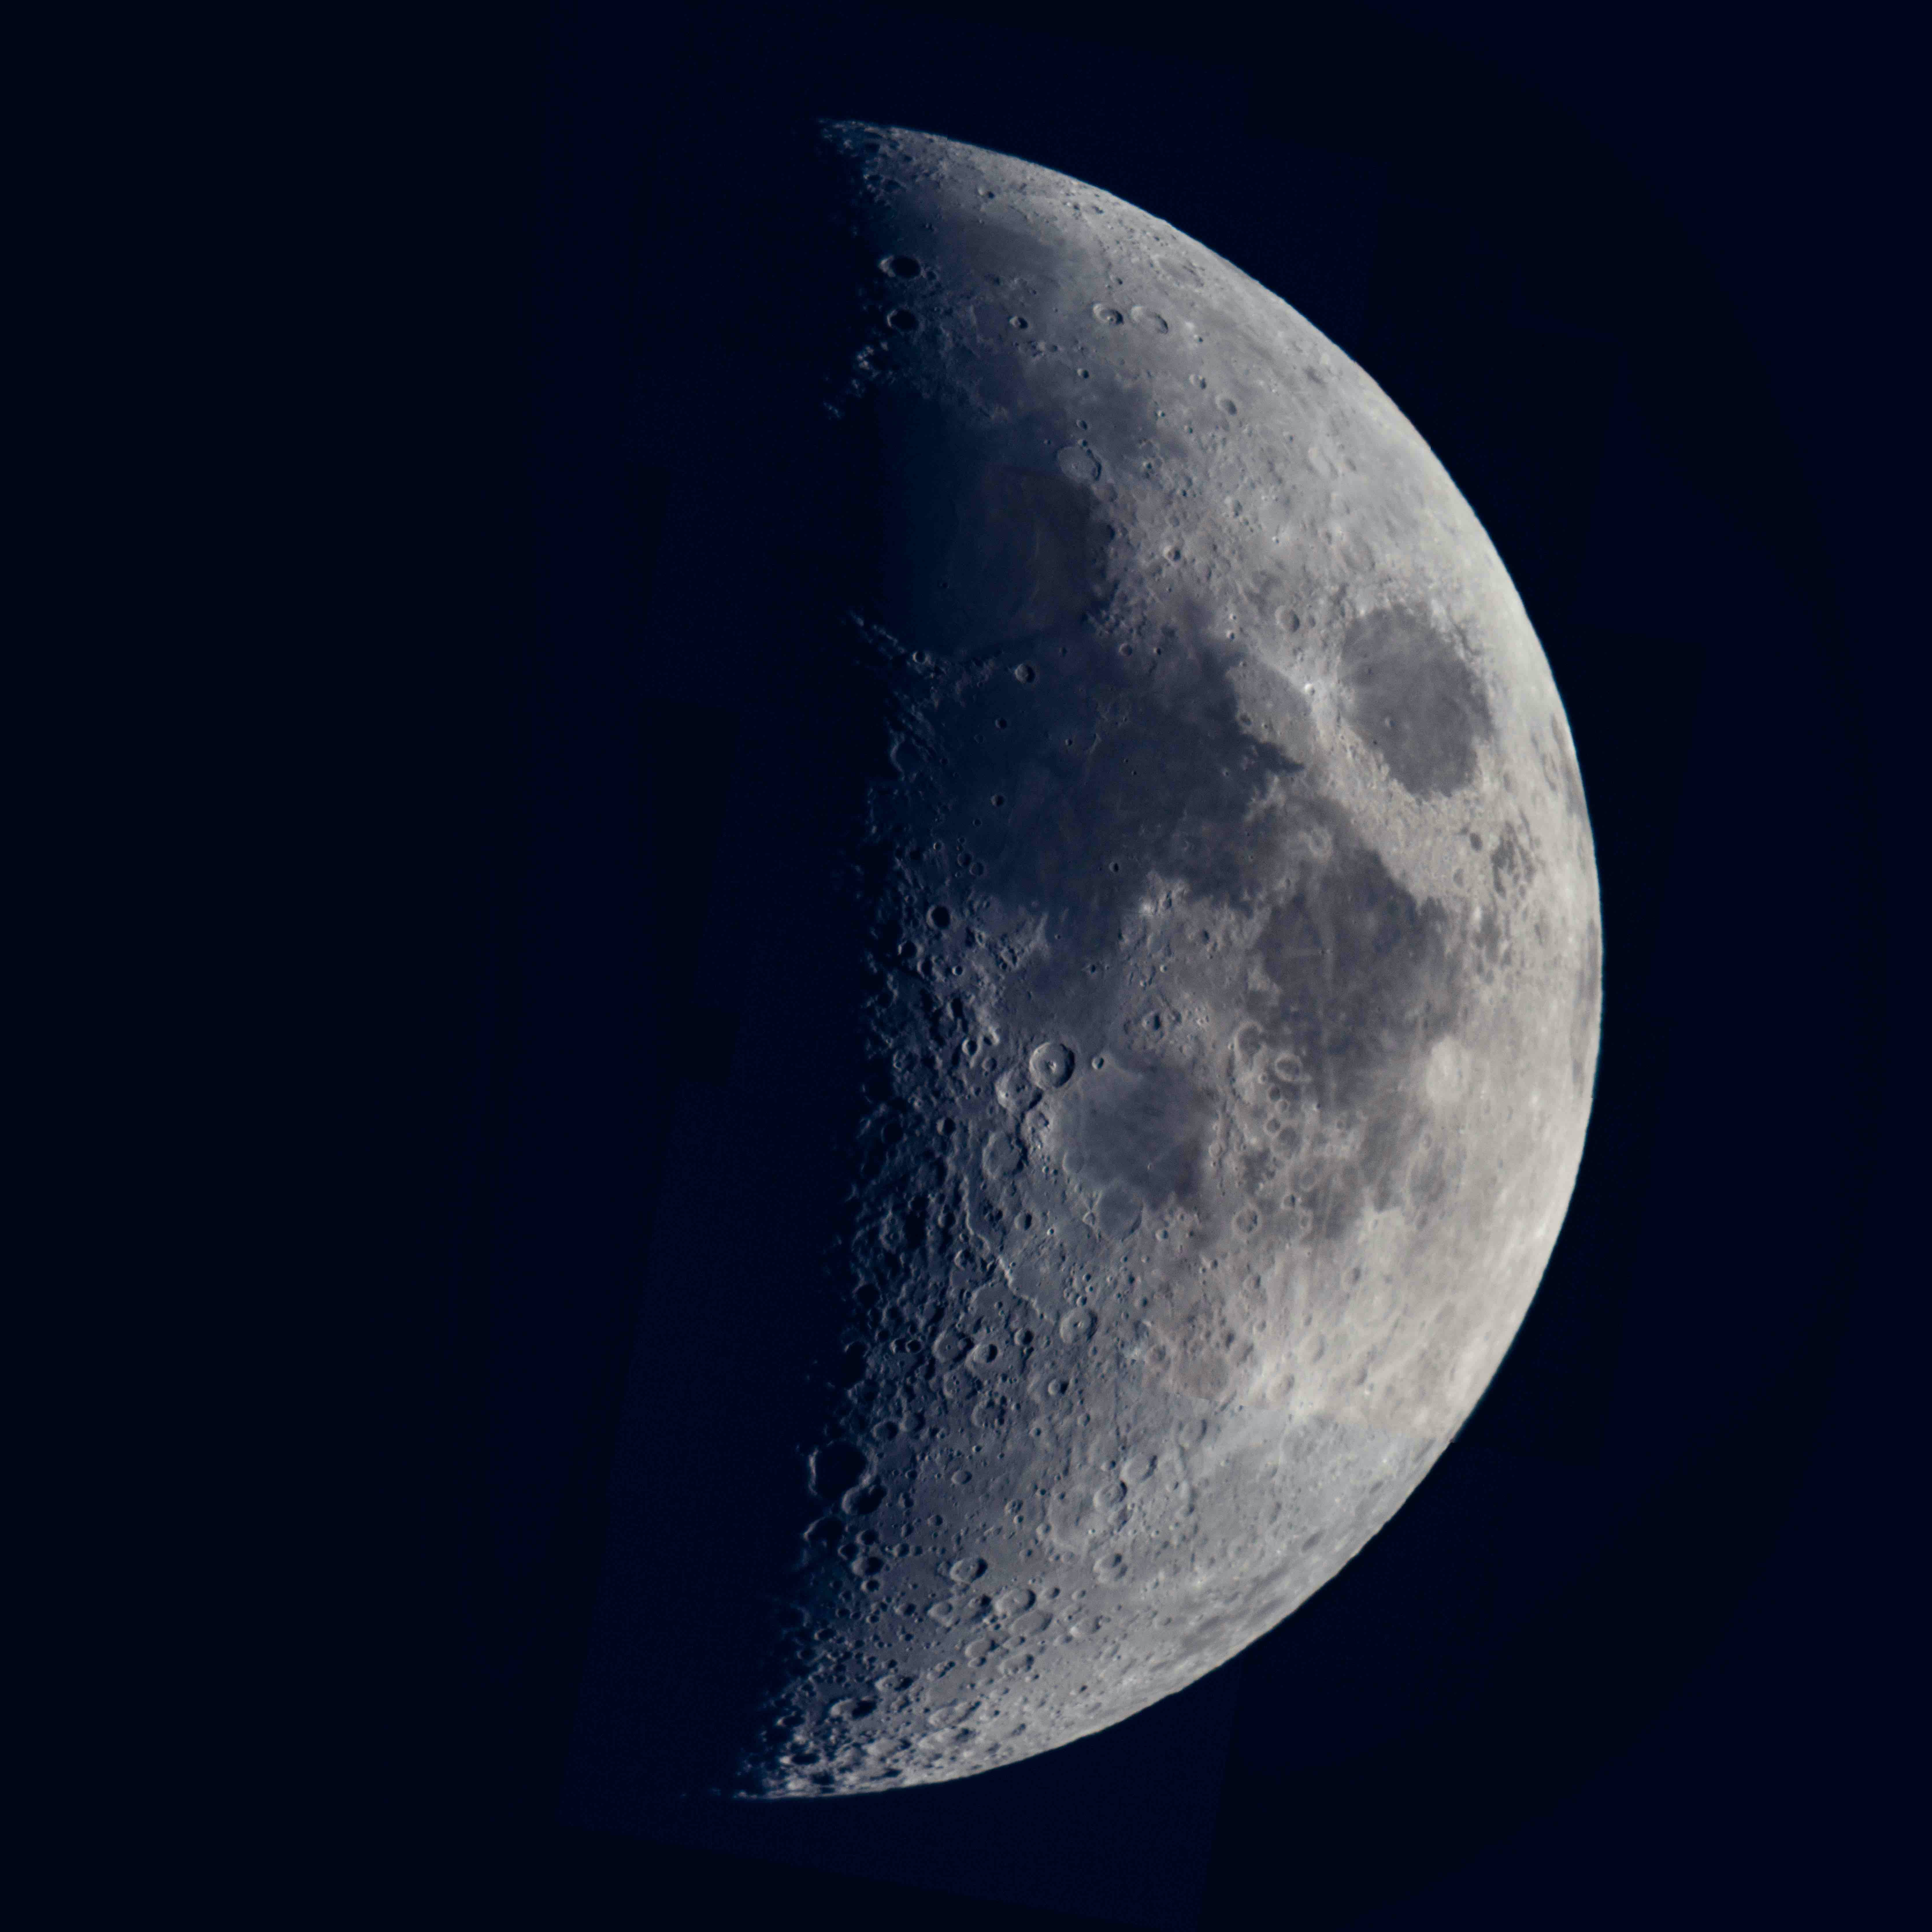 A close up shot taken from Bethlehem of the moon with its planes and craters